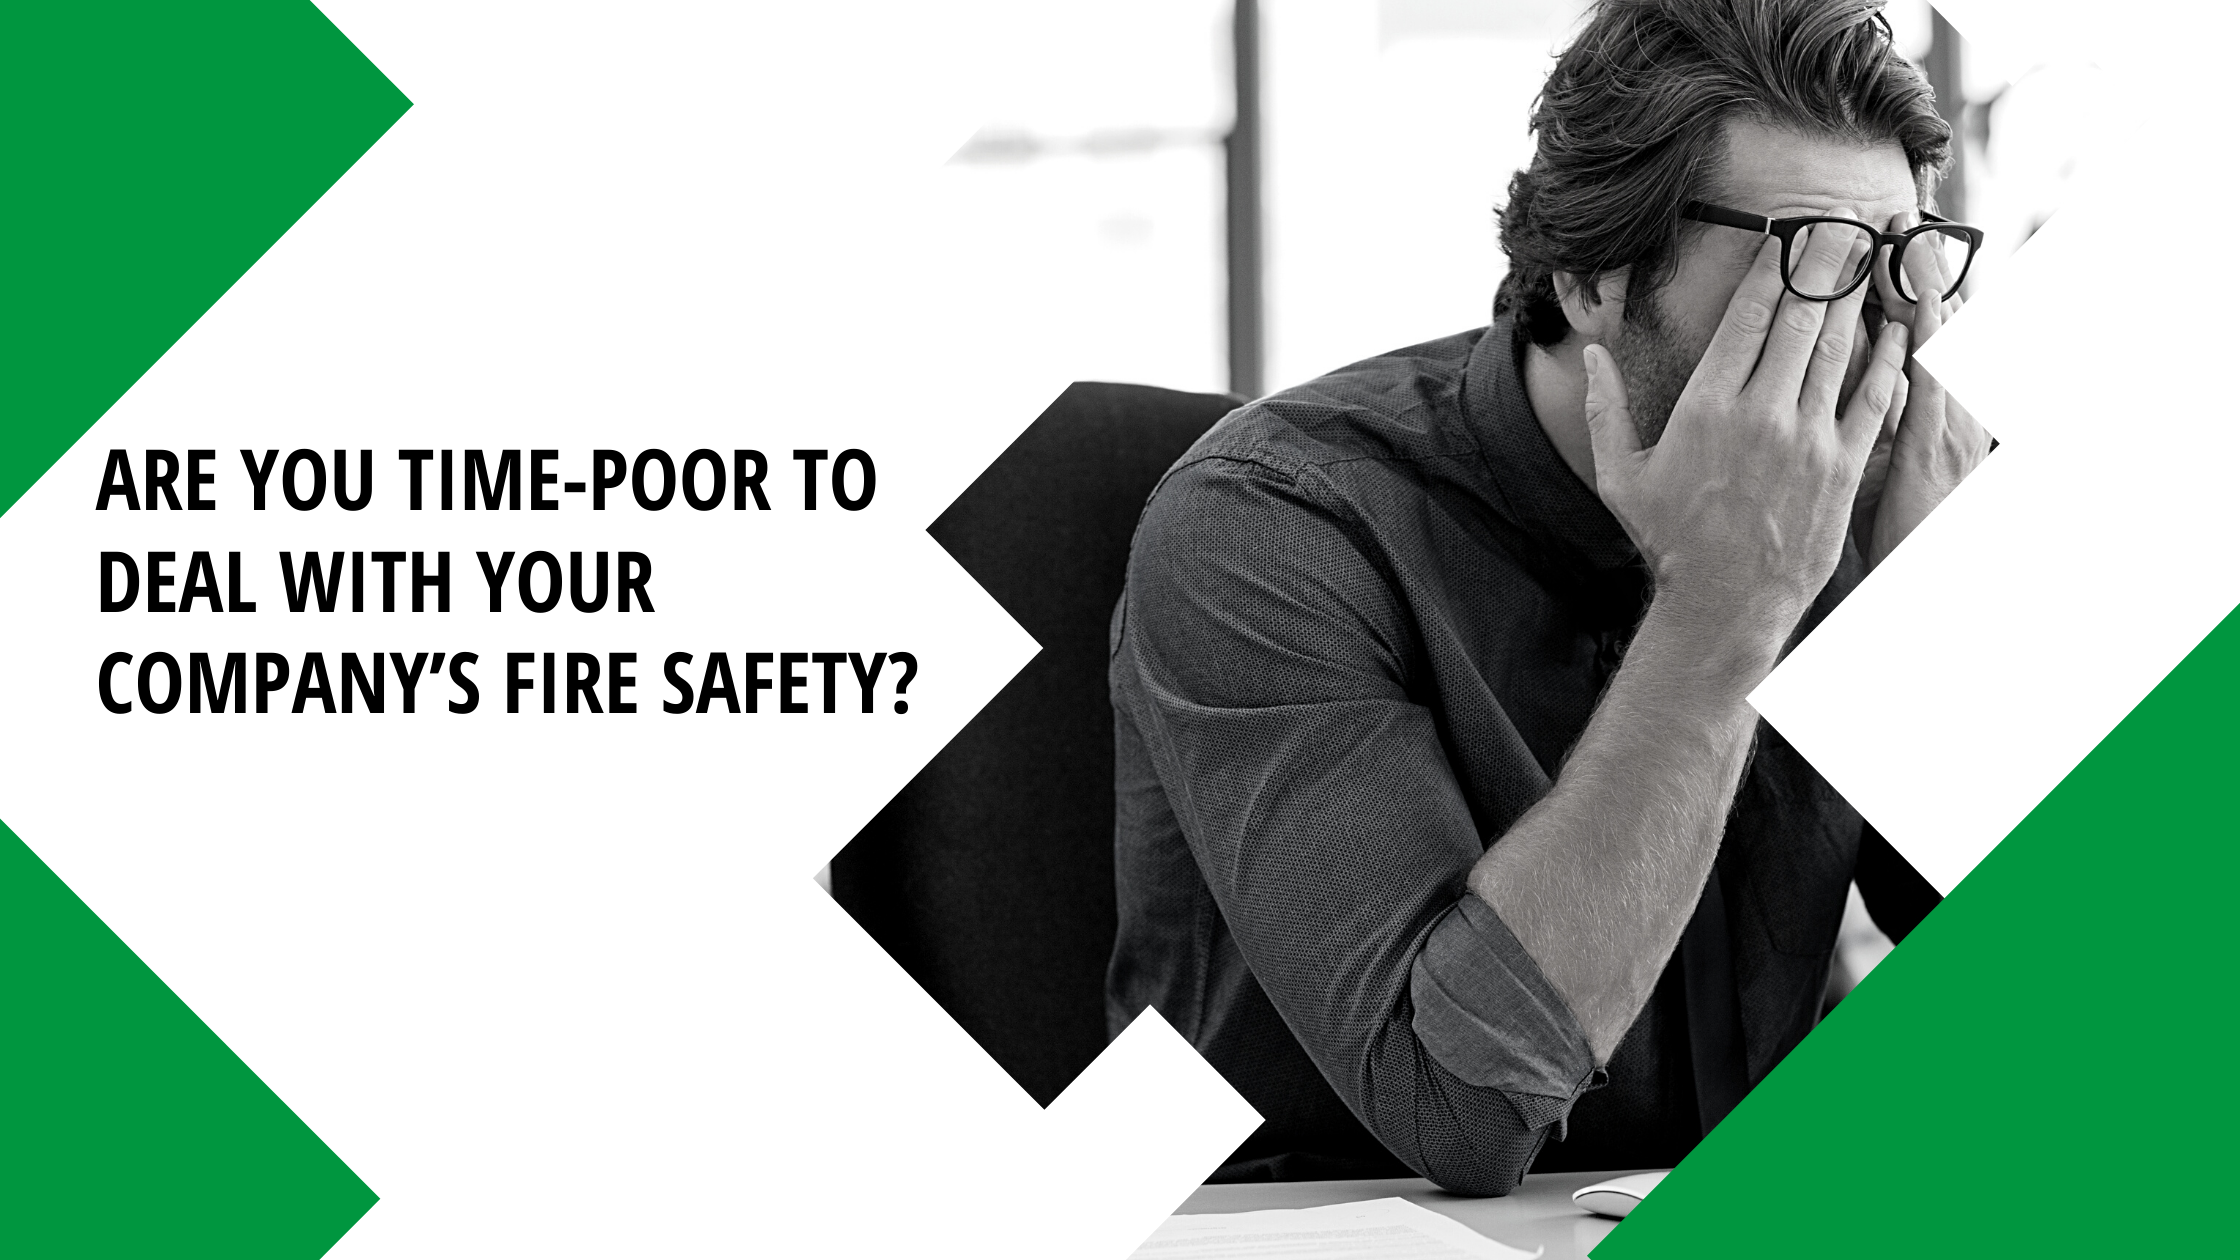 Are You Time-Poor to Deal with Your Company's Fire Safety?